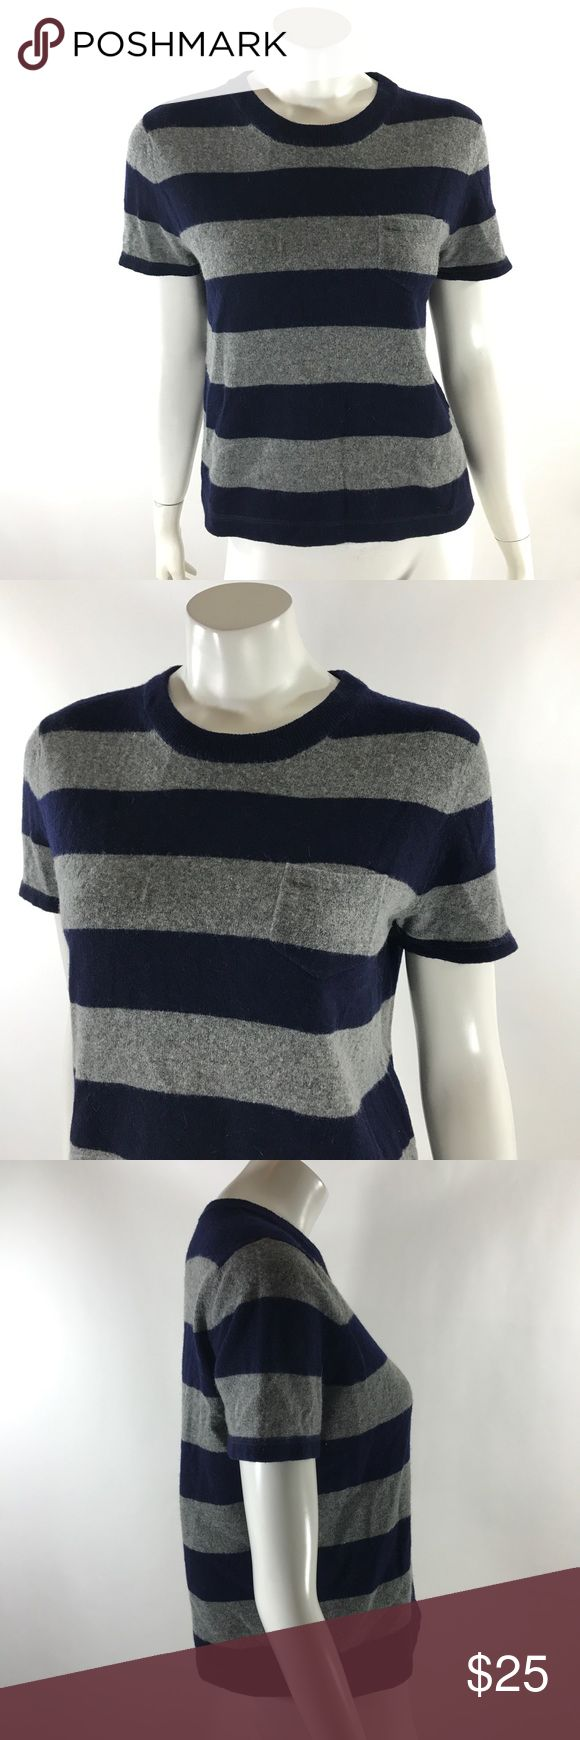 J Crew Short Sleeve Sweater Large Lambswool Boxy J Crew Womens Short Sleeve Sweater Size Large Lambswool Boxy Style Pocket. Measurements: (in inches) Underarm to underarm: 19 in Length: 22 in  Good, gently used condition J. Crew Sweaters Crew & Scoop Necks